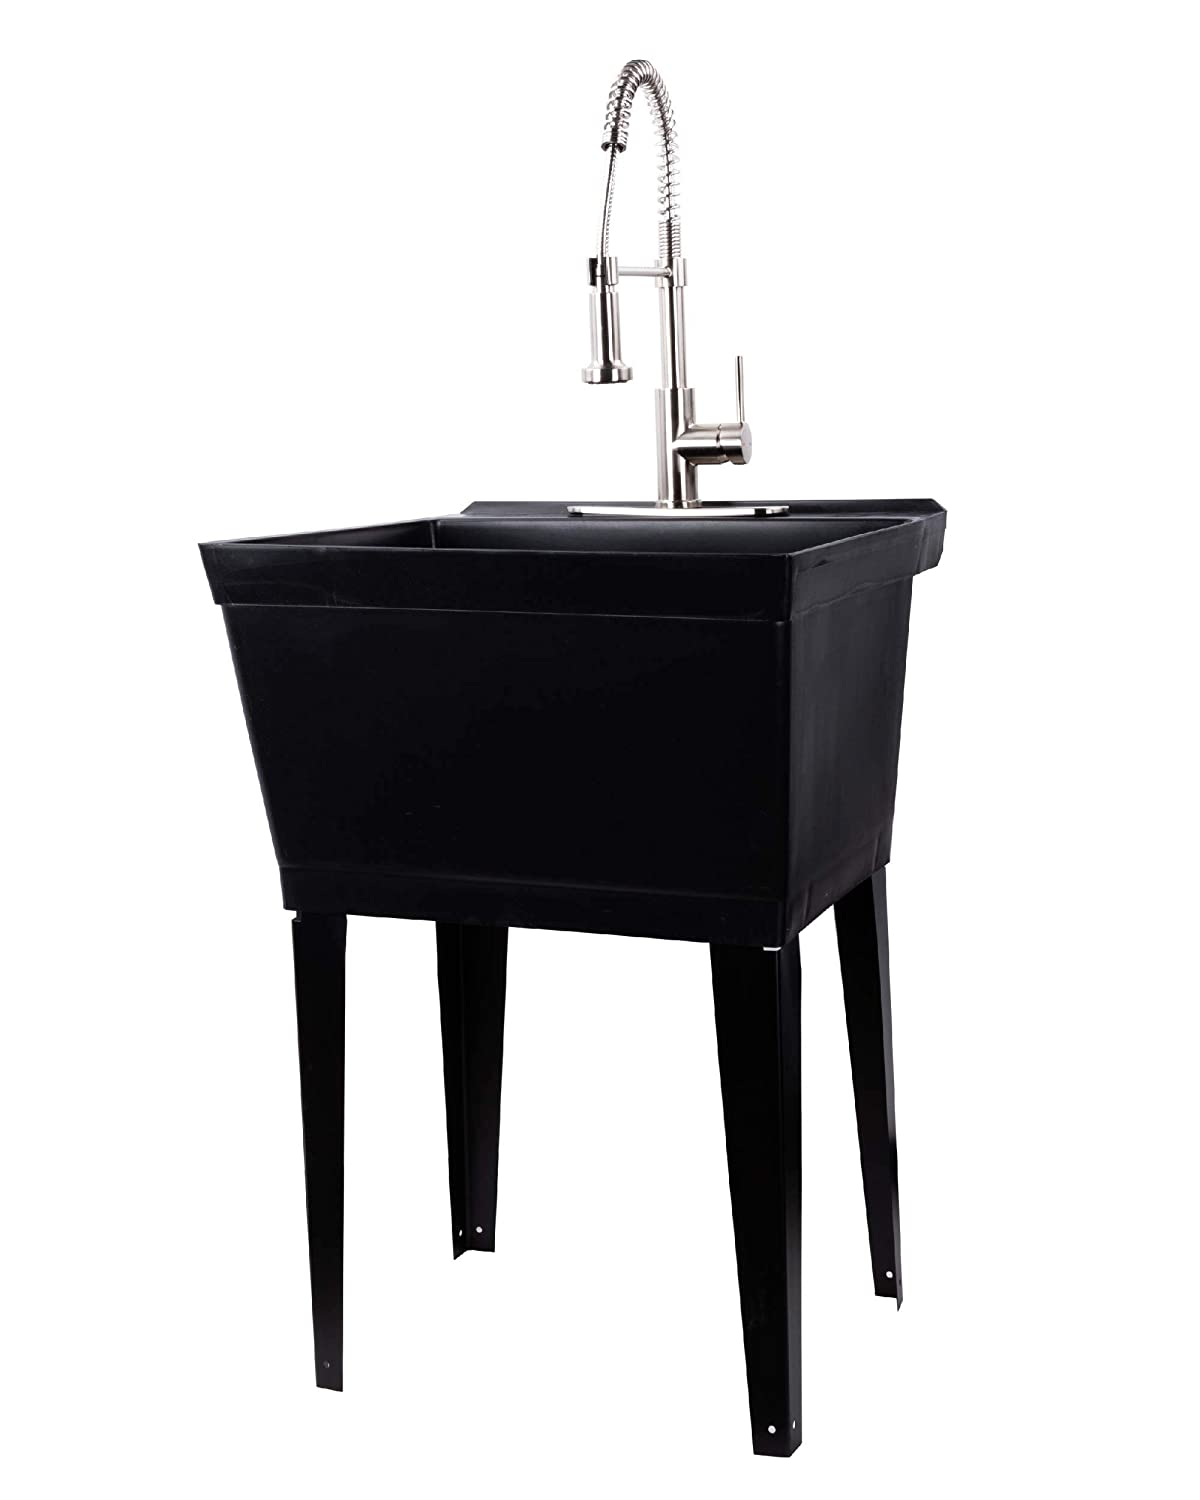 Black Utility Sink Laundry Tub with Commercial Grade Stainless Steel Pull Down Sprayer Faucet, Integrated Supply Lines, and Drainage are Included, Free Standing Wash Station, Heavy Duty Floor Mounted